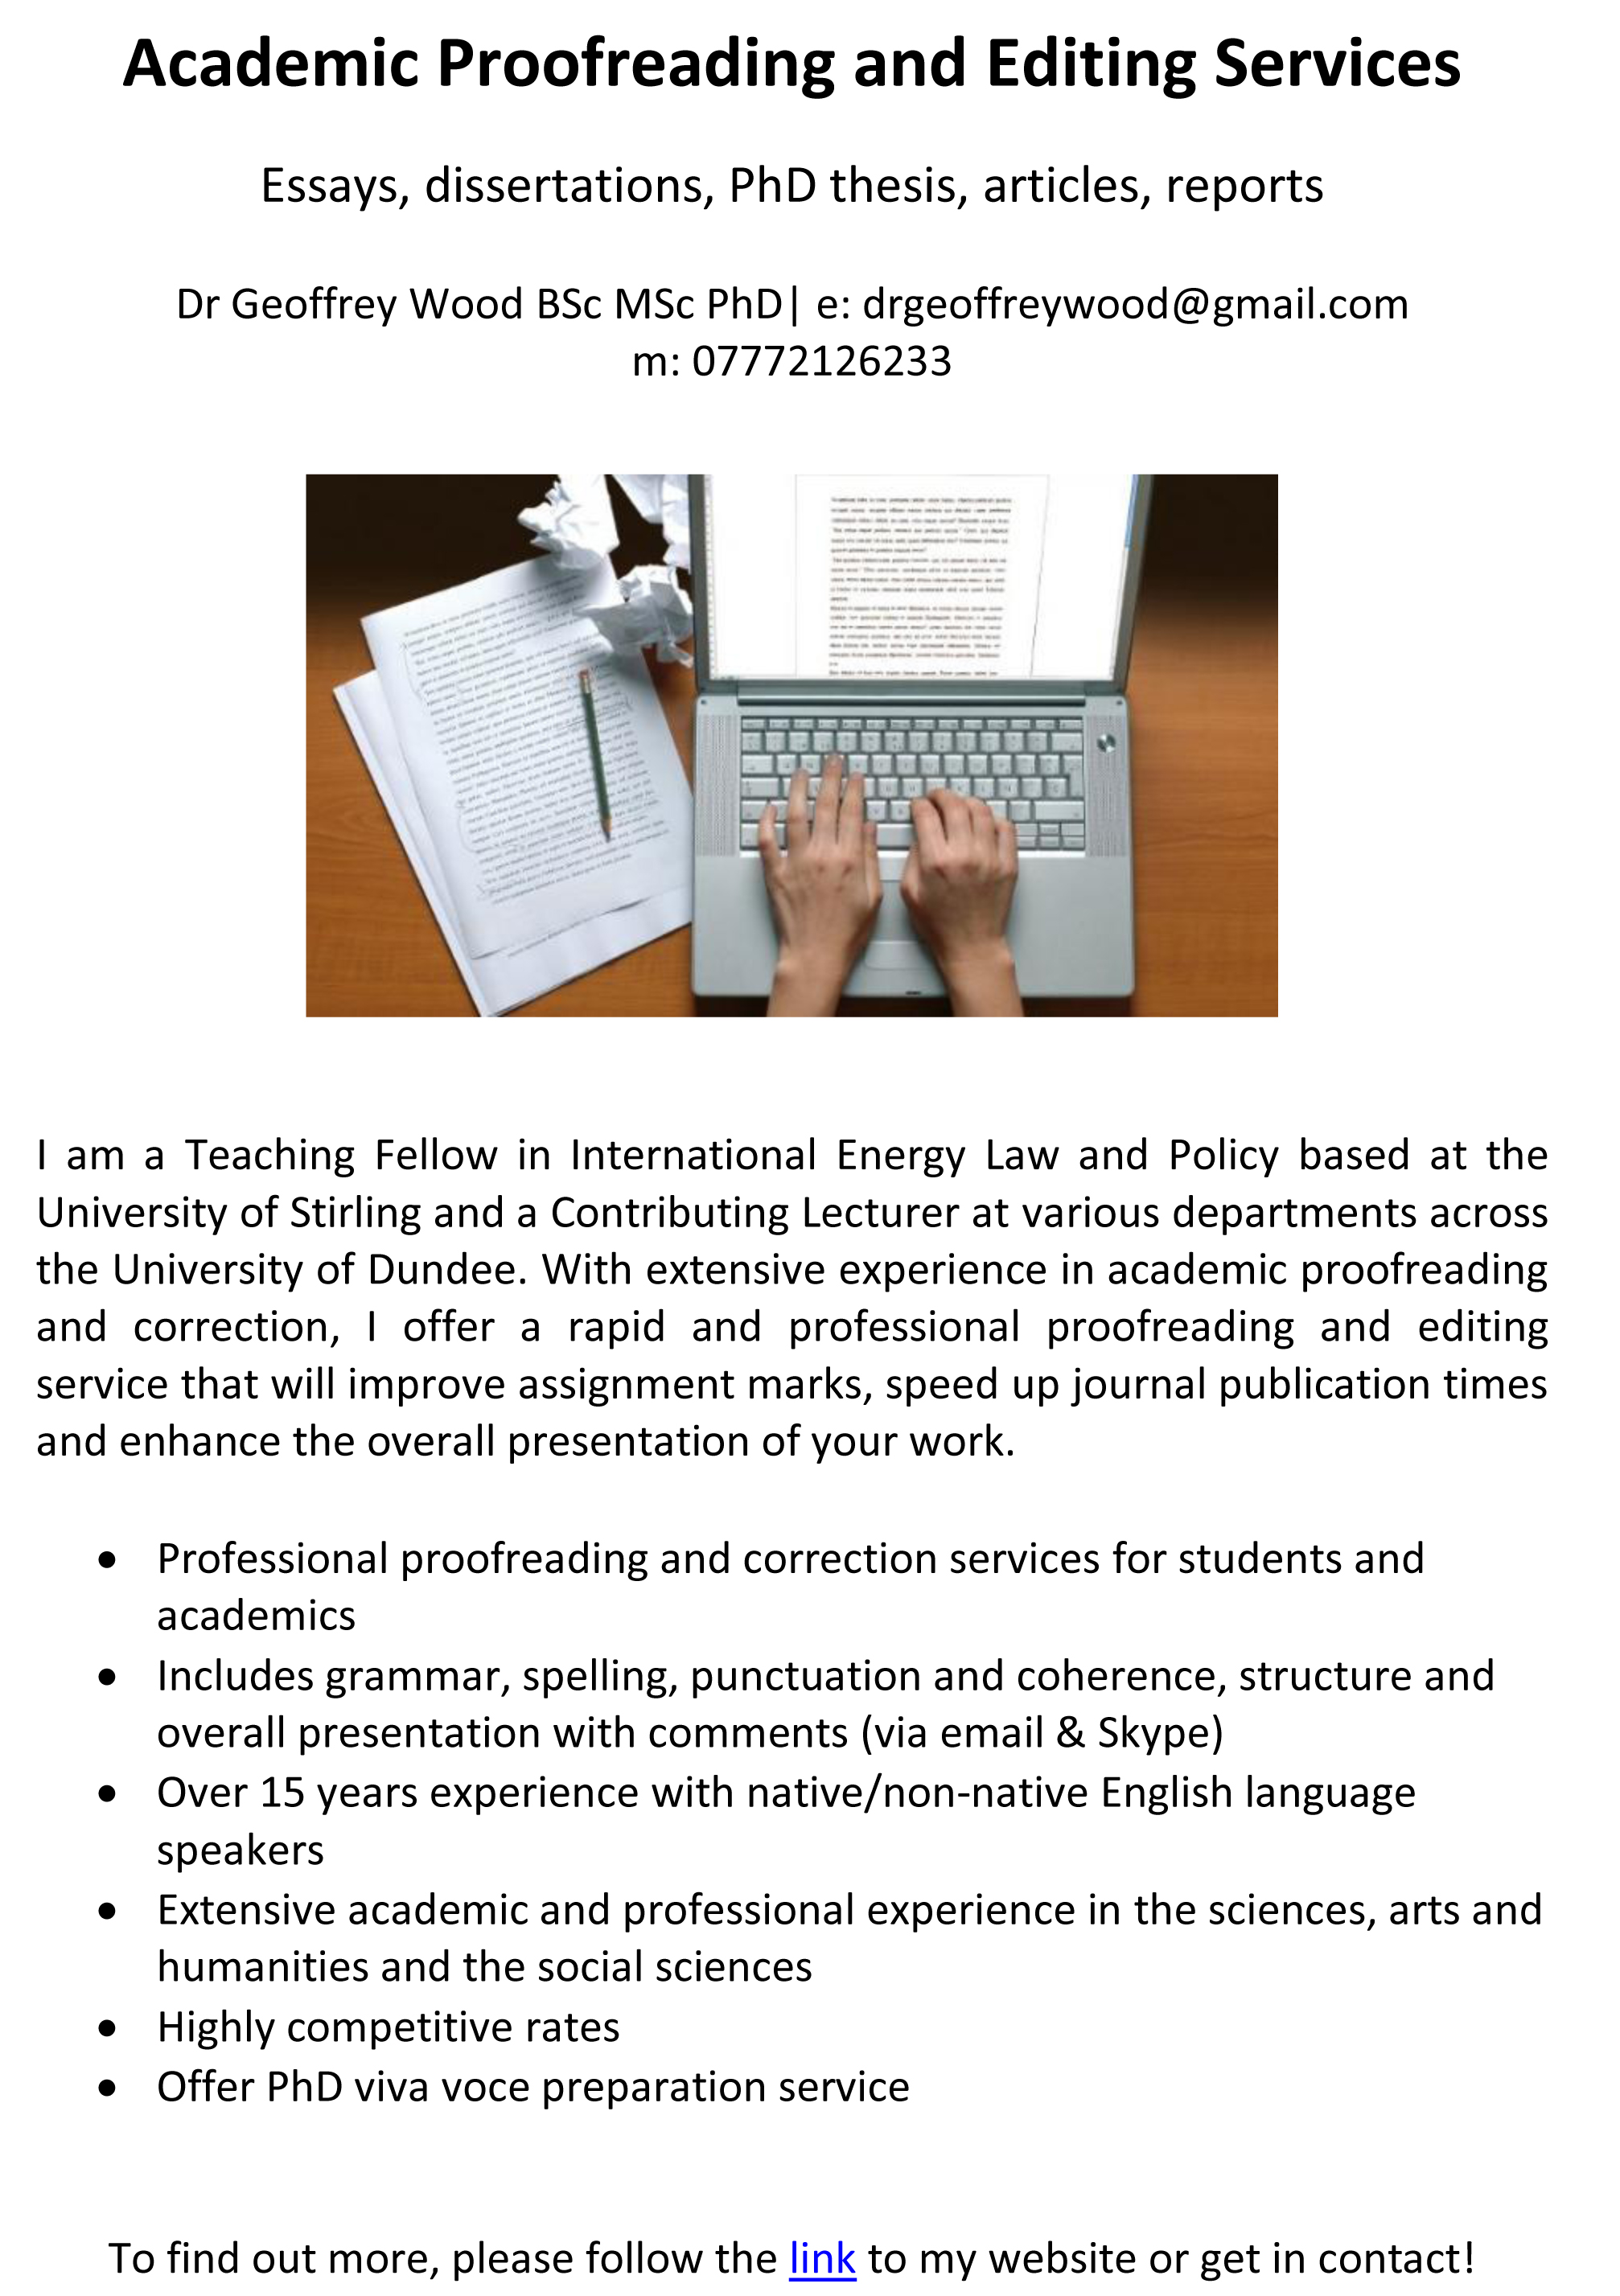 law essay proofreading Our legal documents editing & proofreading services can help ensure that your writing as a practising lawyer, a professor of law or a law student is clear, accurate & persuasive.